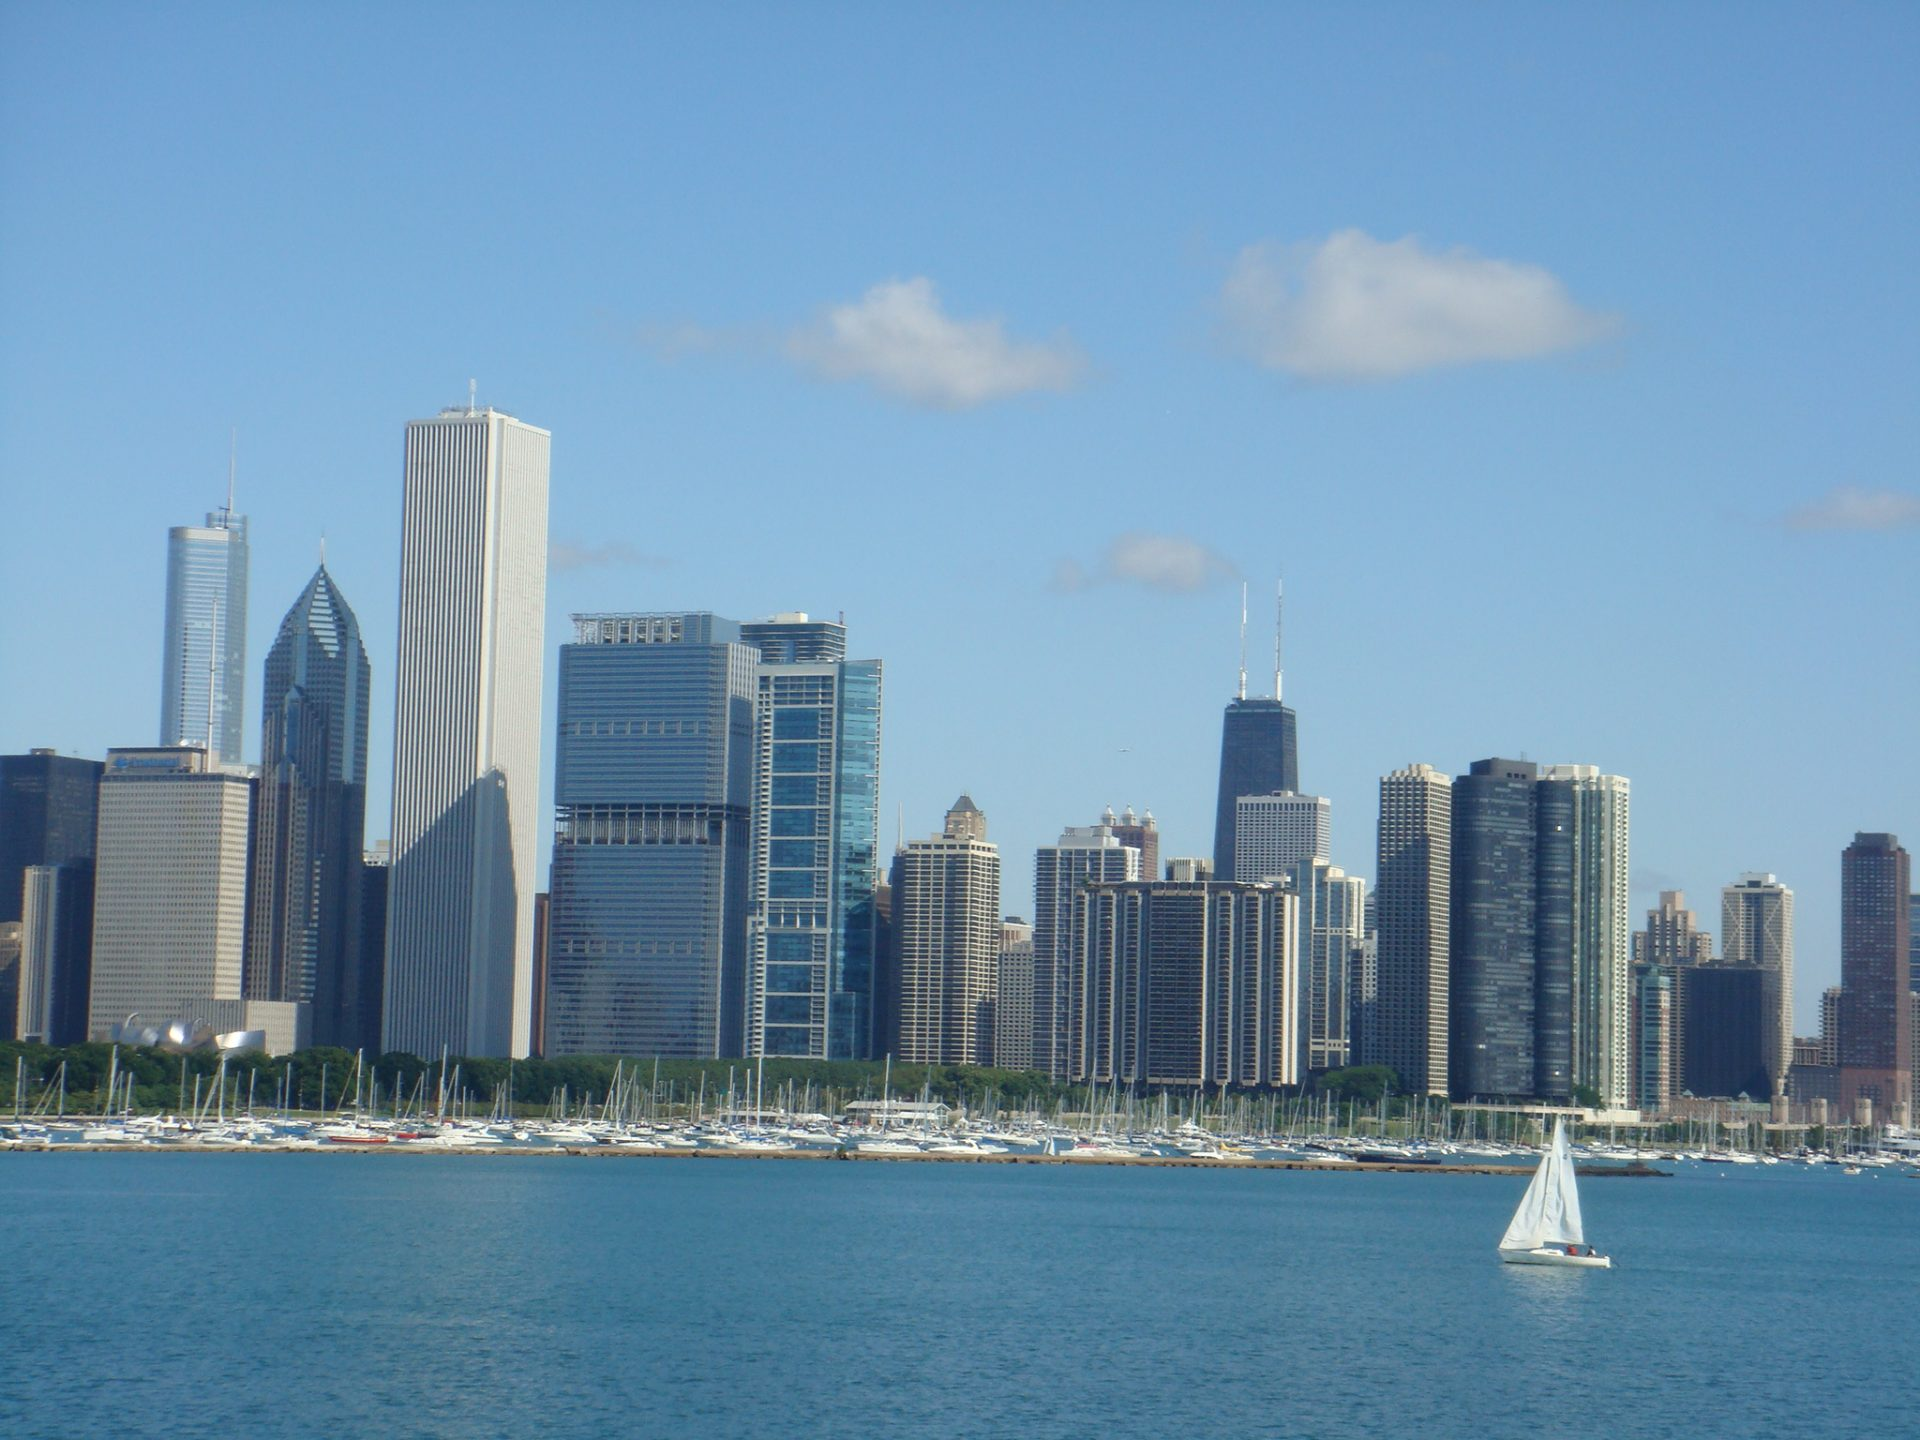 Chicago's breathtaking lakefront